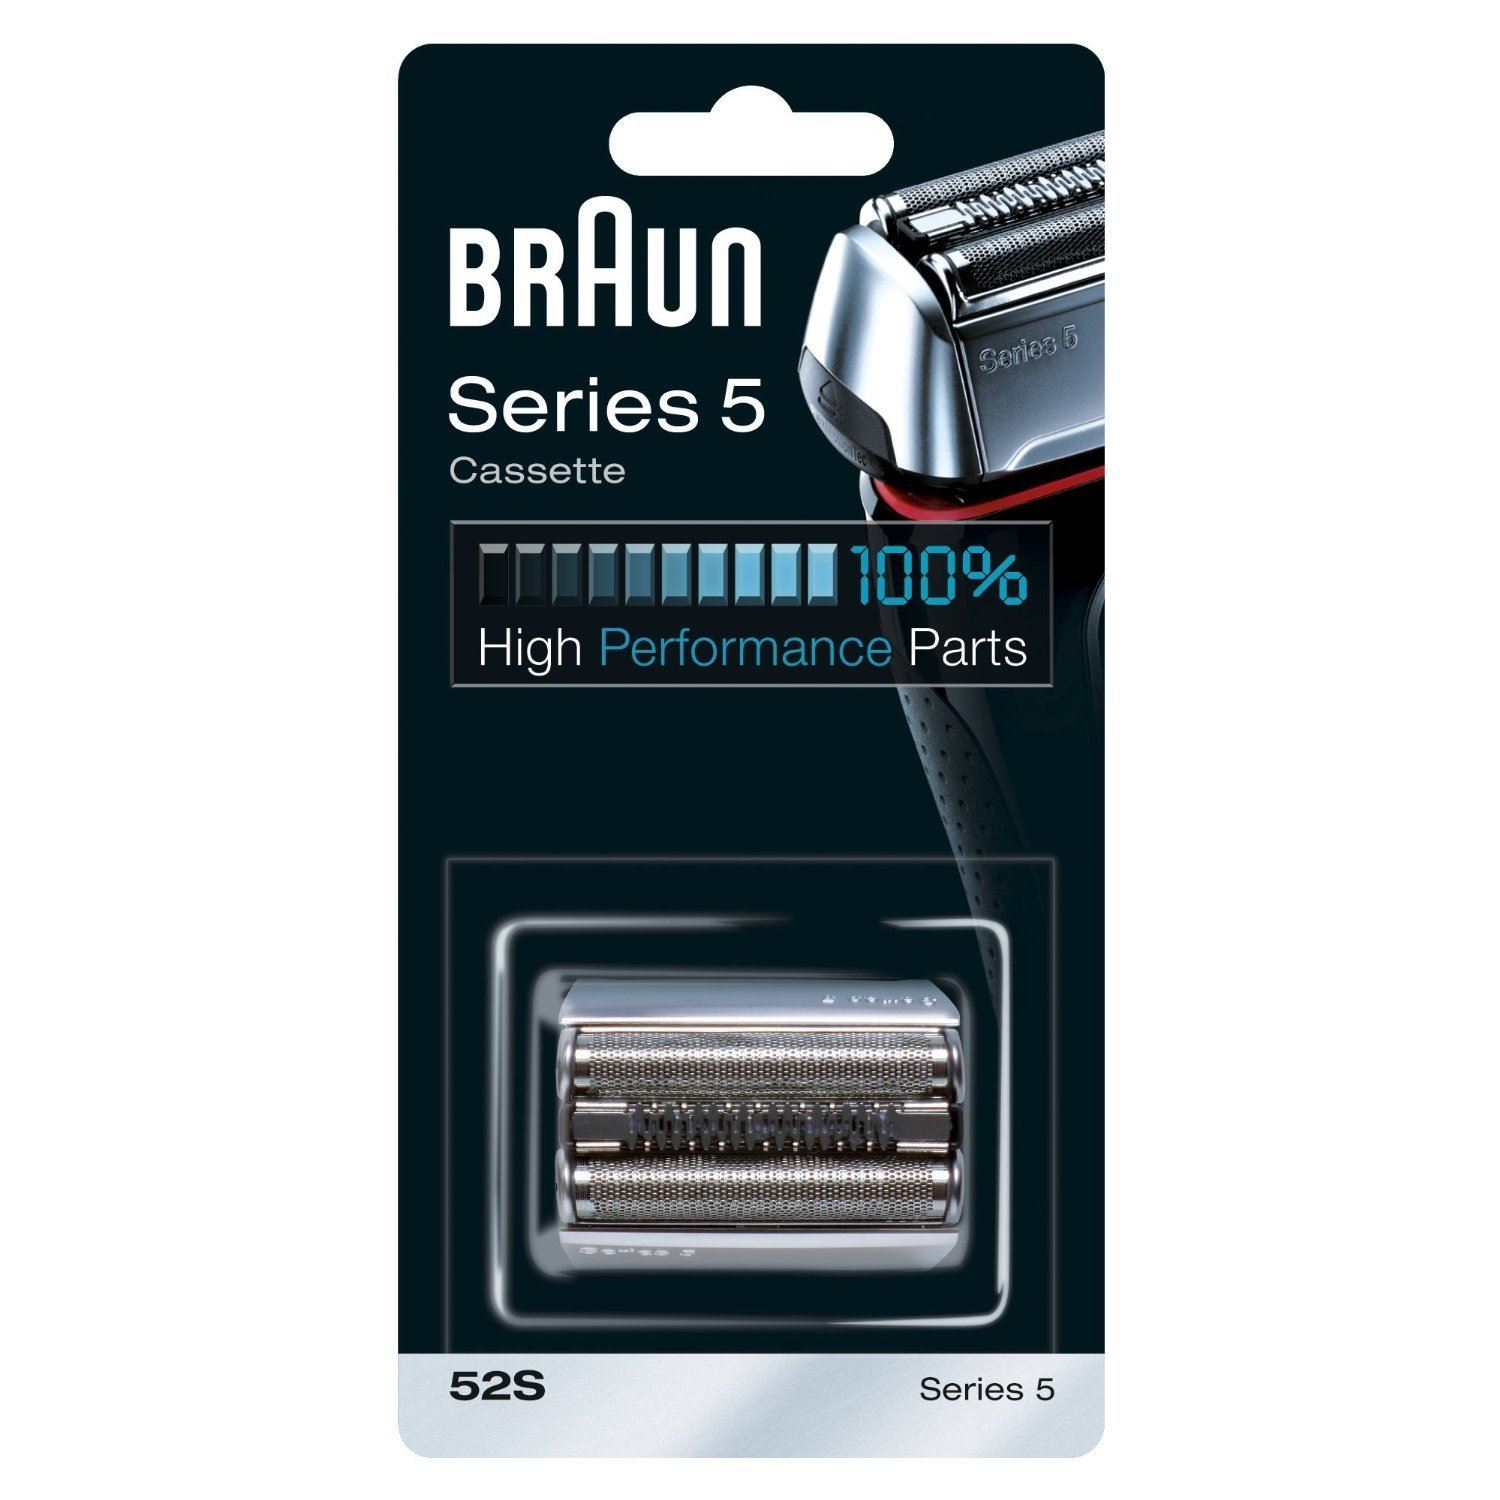 braun combi 52s cassette replacement foil cutter pack for series 5 men shavers ebay. Black Bedroom Furniture Sets. Home Design Ideas